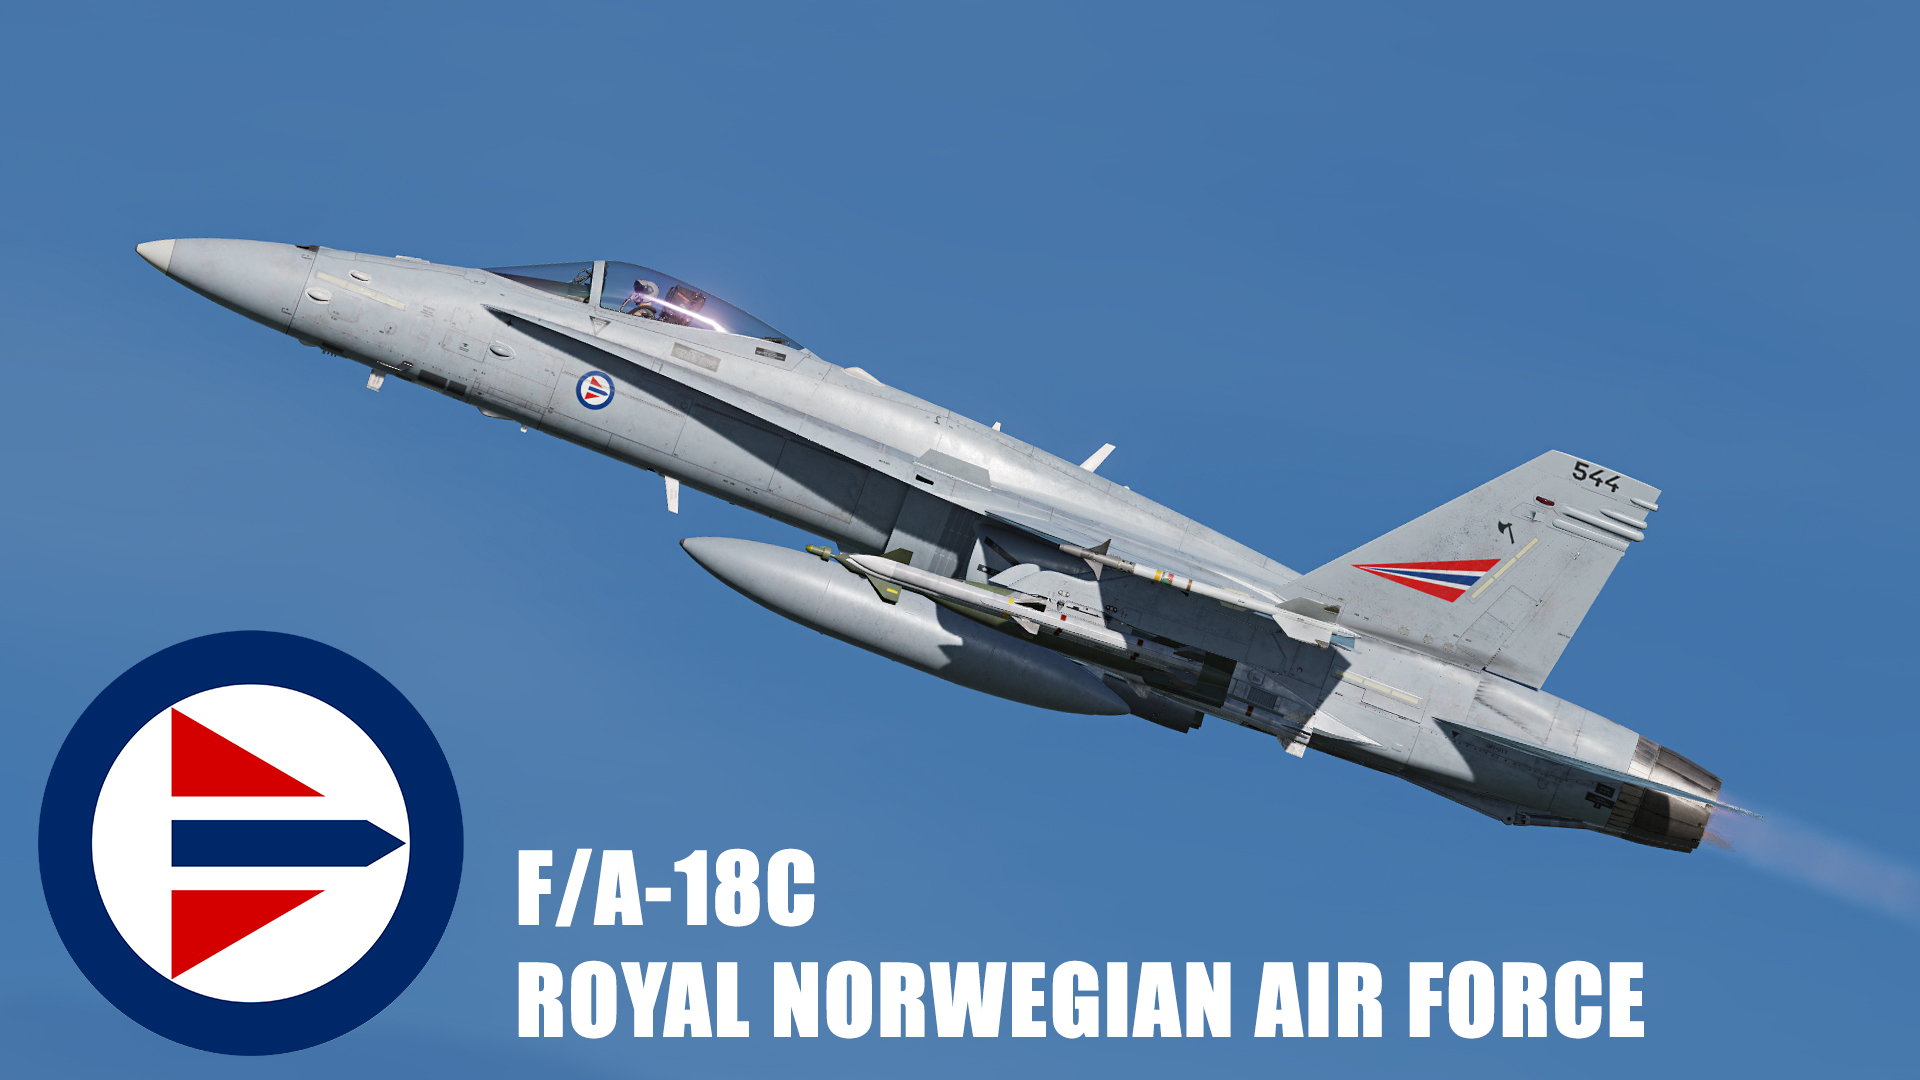 F/A-18C - Royal Norwegian Air Force (No. 331, 332 & 338 Squadron)